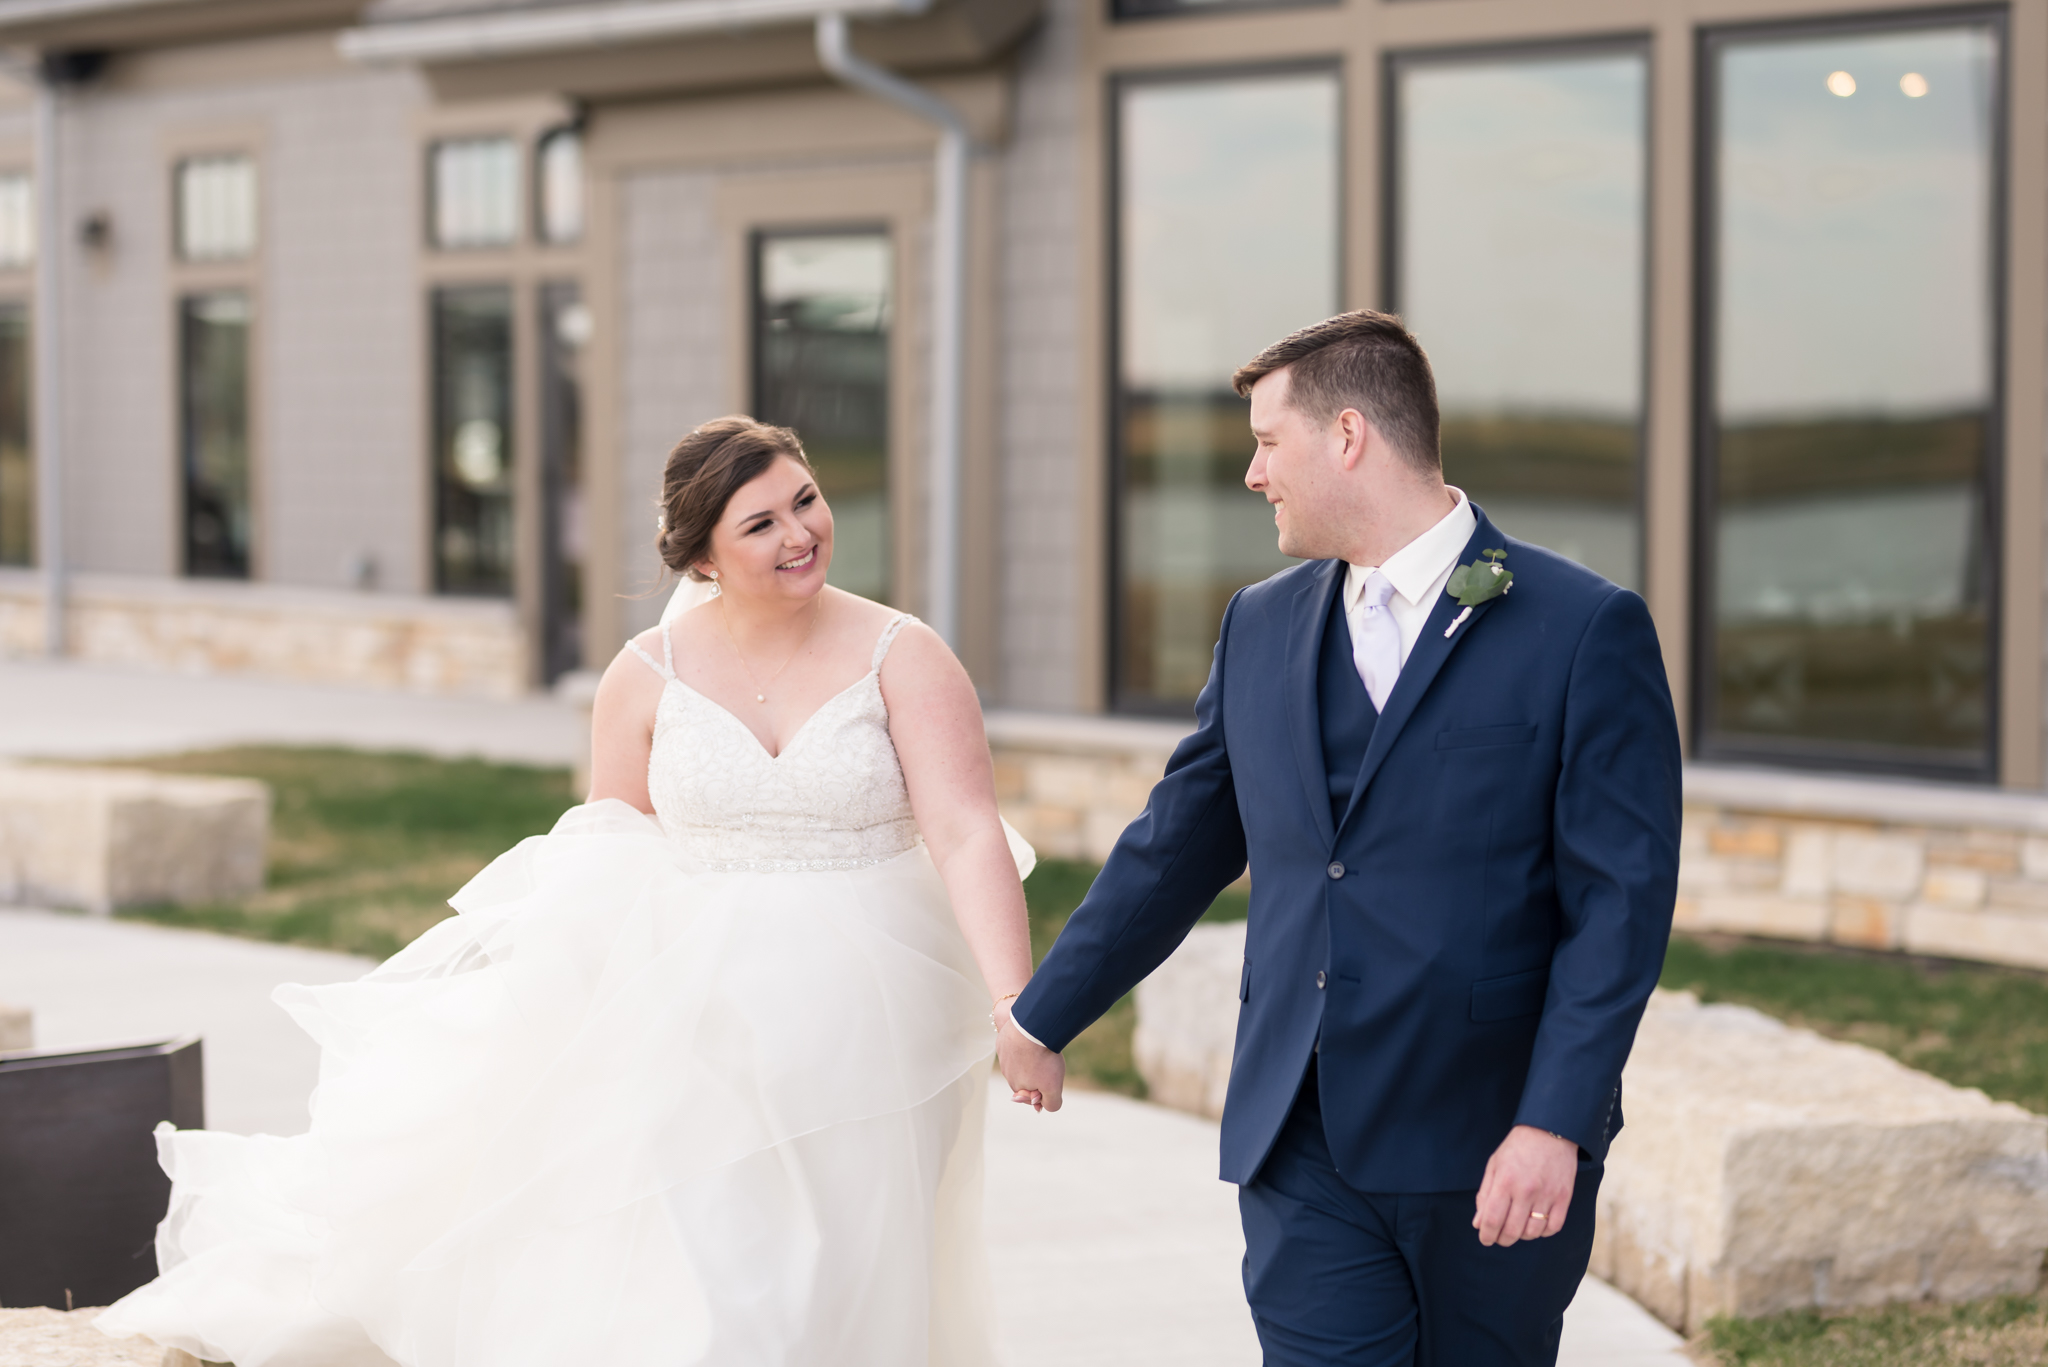 Oxbow Country Club Wedding by Fargo Wedding Photographer Chelsea Joy Photography